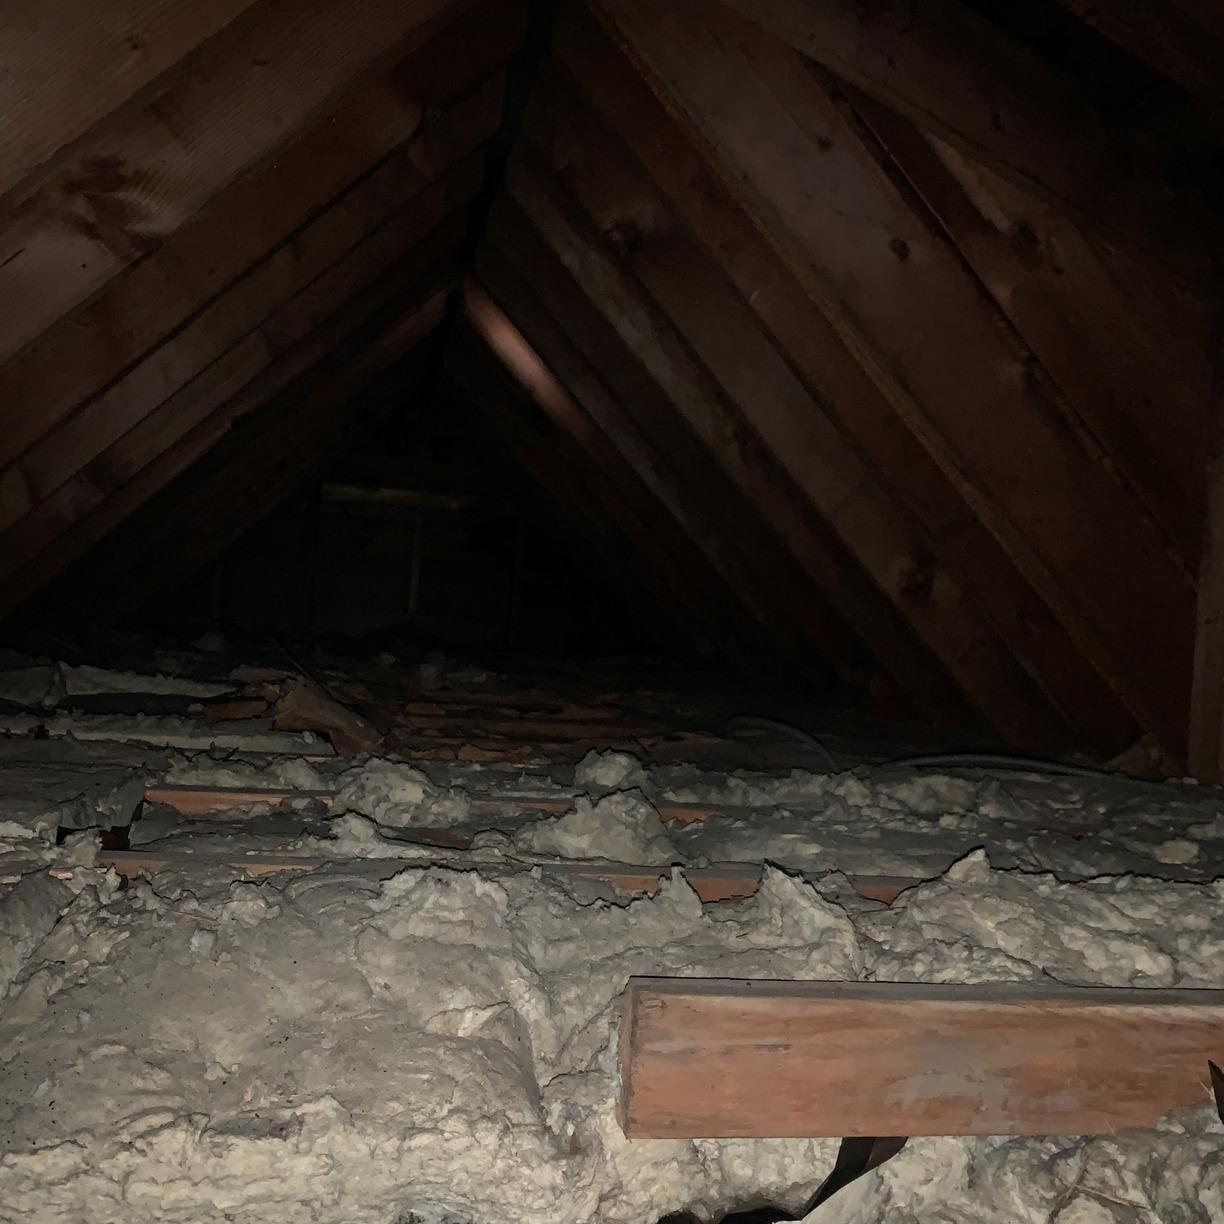 Cellulose Insulation and Air Sealing in Attic - Franklin Square, NY - Before Photo